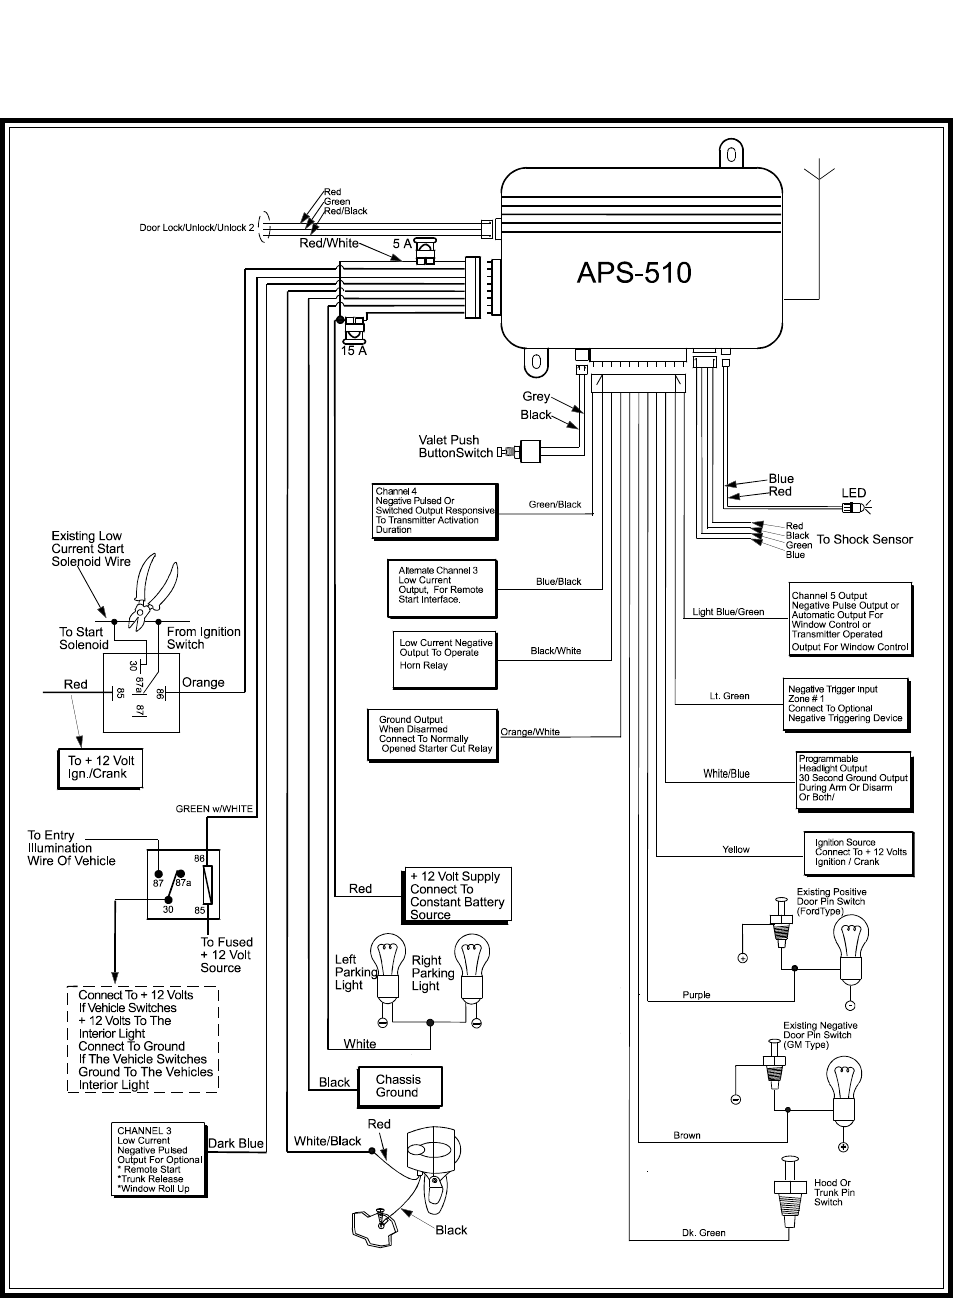 063ed920 b917 4478 a8a8 016b55389332 bg8 page 8 of audiovox automobile alarm aps 510 user guide audiovox car alarm wiring diagram at edmiracle.co